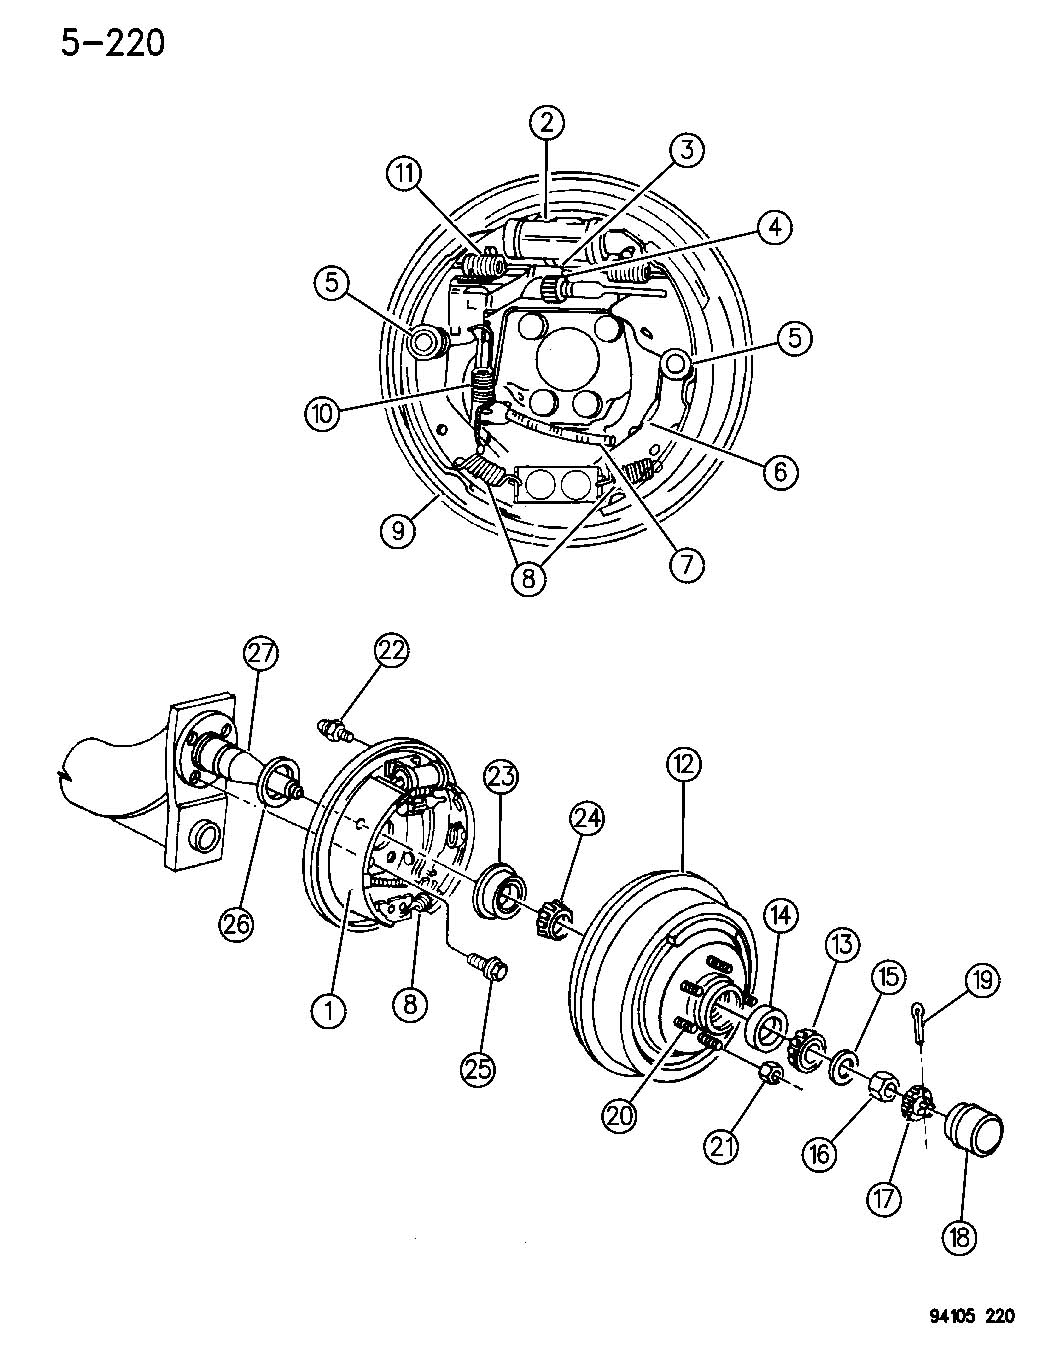 Service manual [Rear Diff Axle Removal 1994 Plymouth